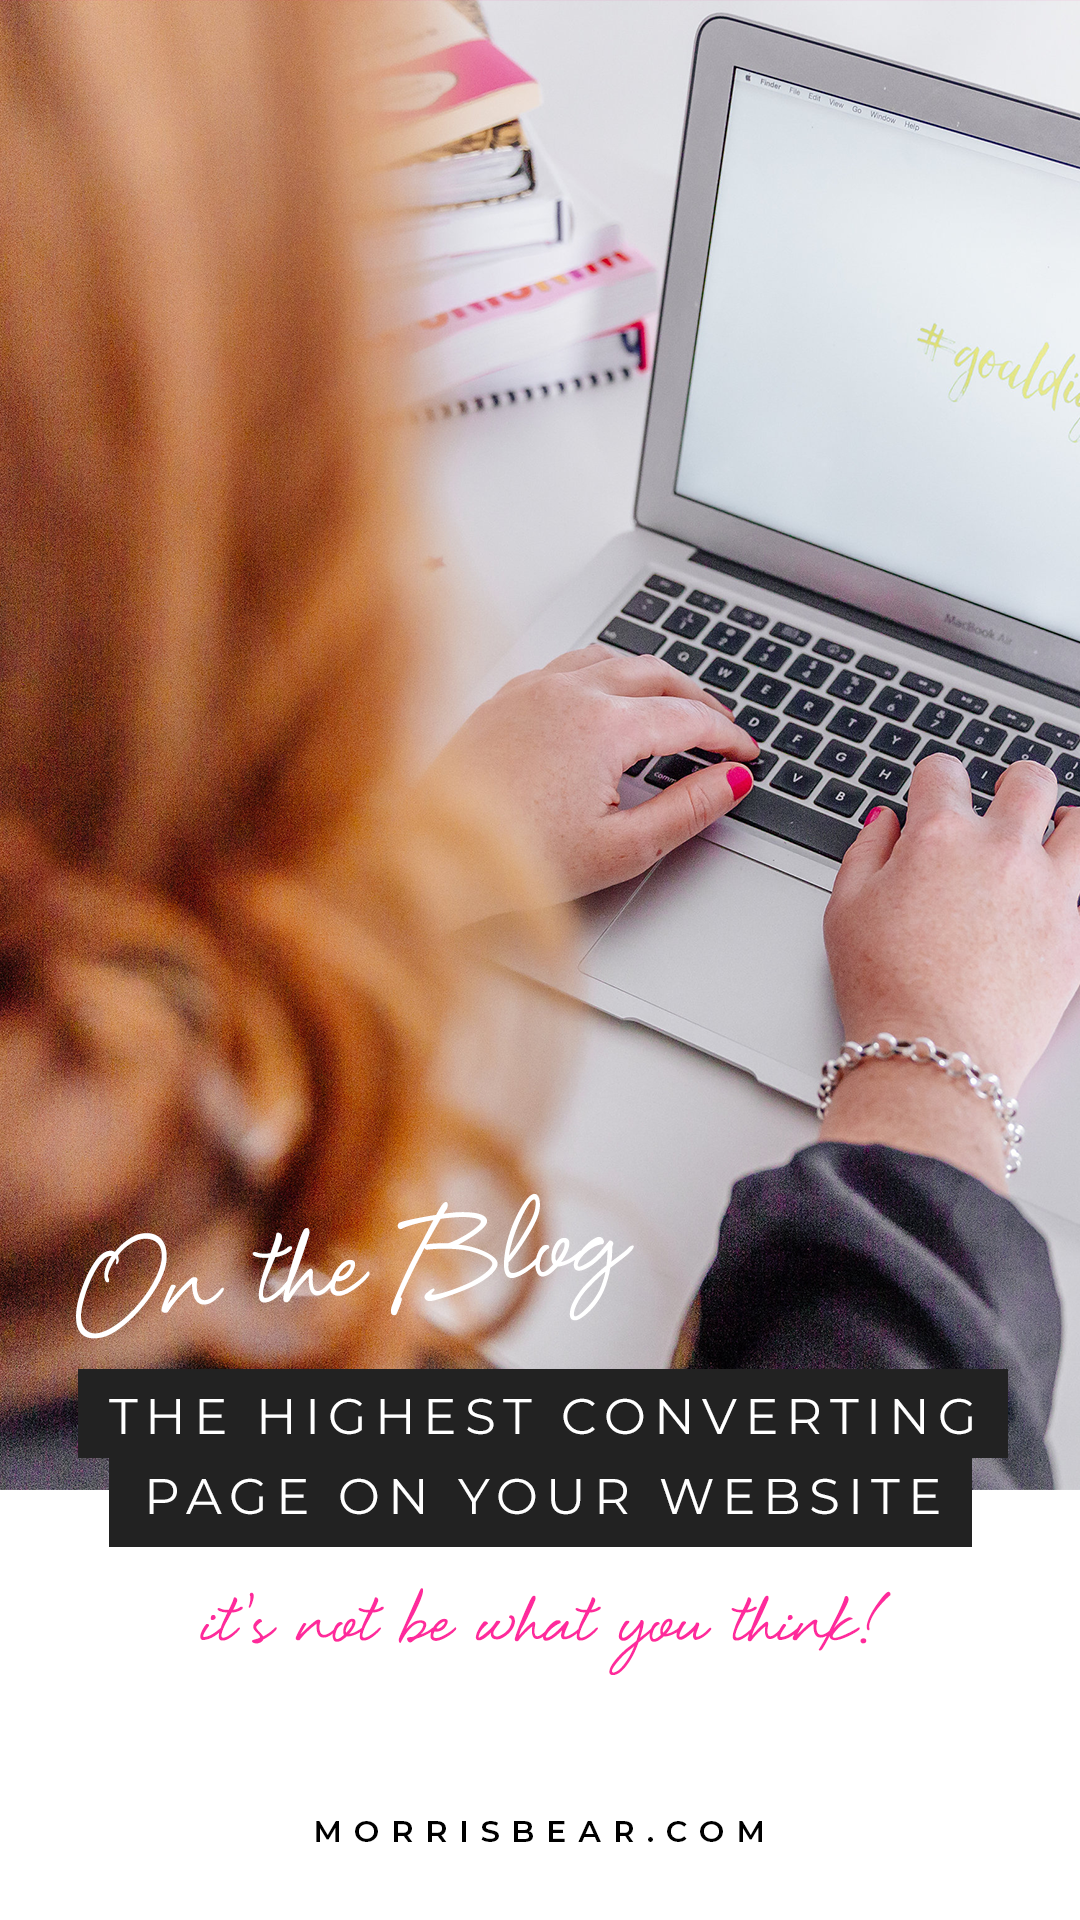 What's the highest converting page on your website? HINT: It's probably now what you think!